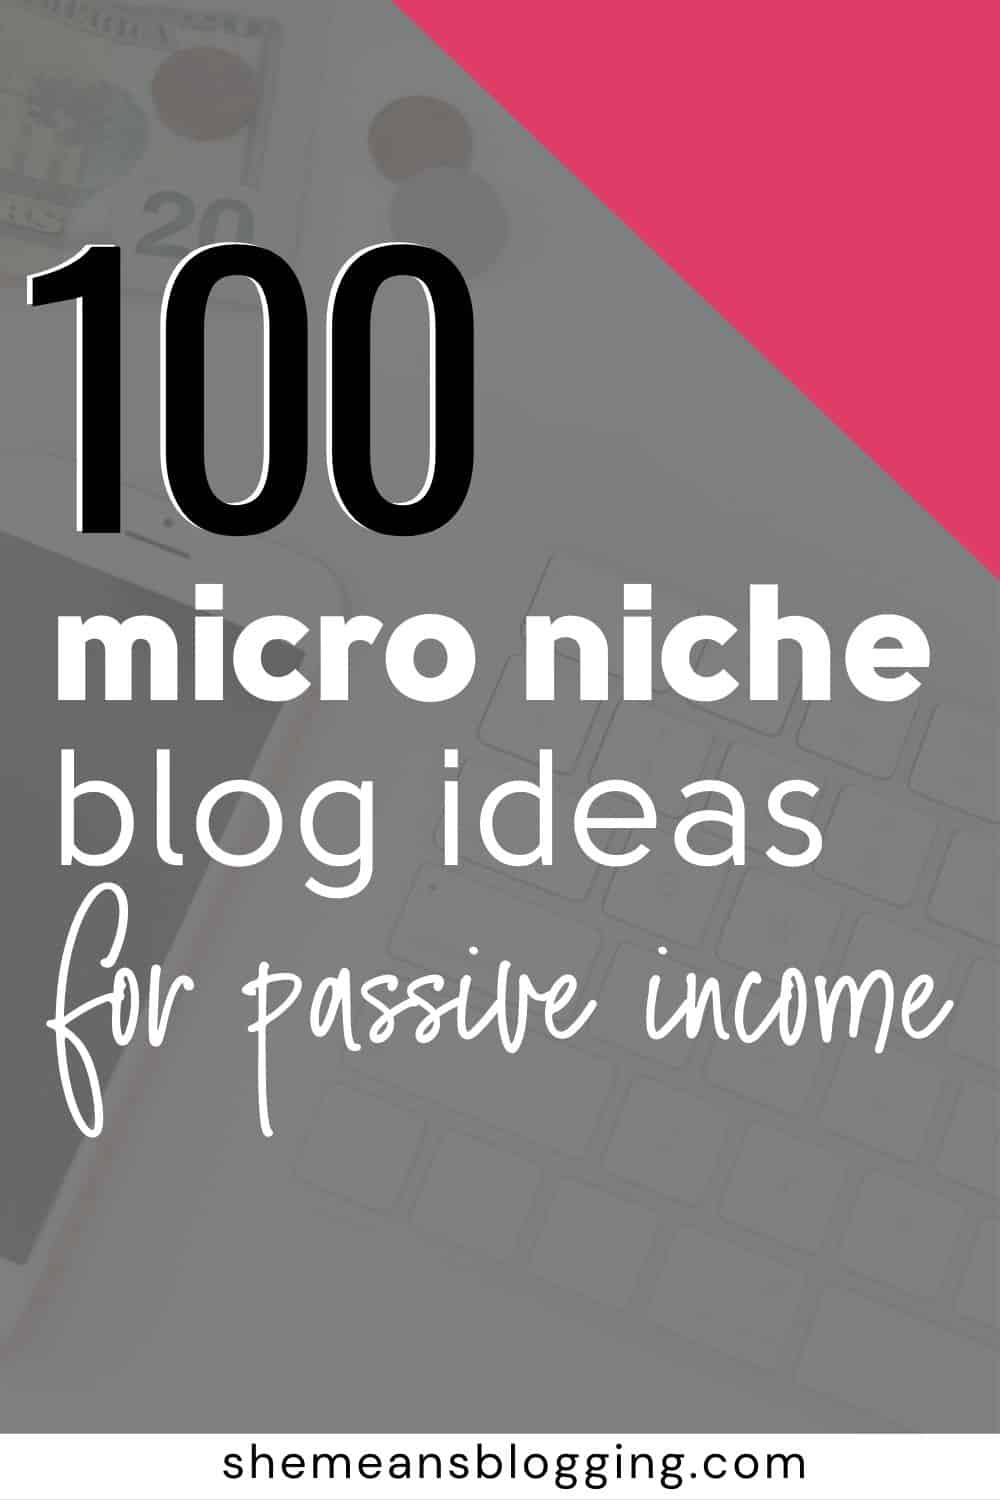 The best micro niche blog ideas to make passive income. Want to start a micro niche blog site? Click to find out 100+ best and high demand micro niche blog topics.